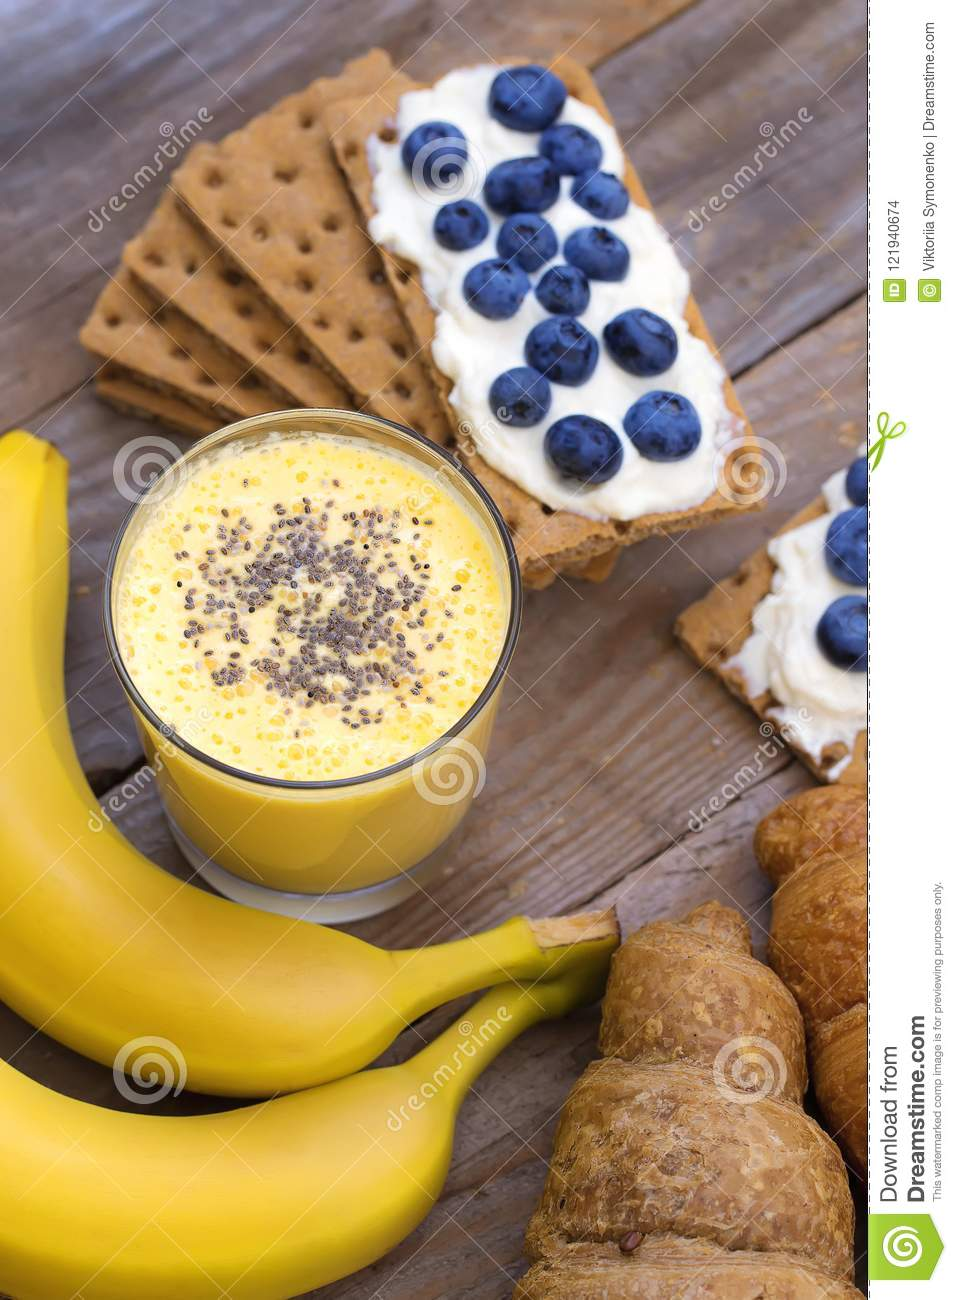 Crunchy cereal breakfast, banana smoothie.